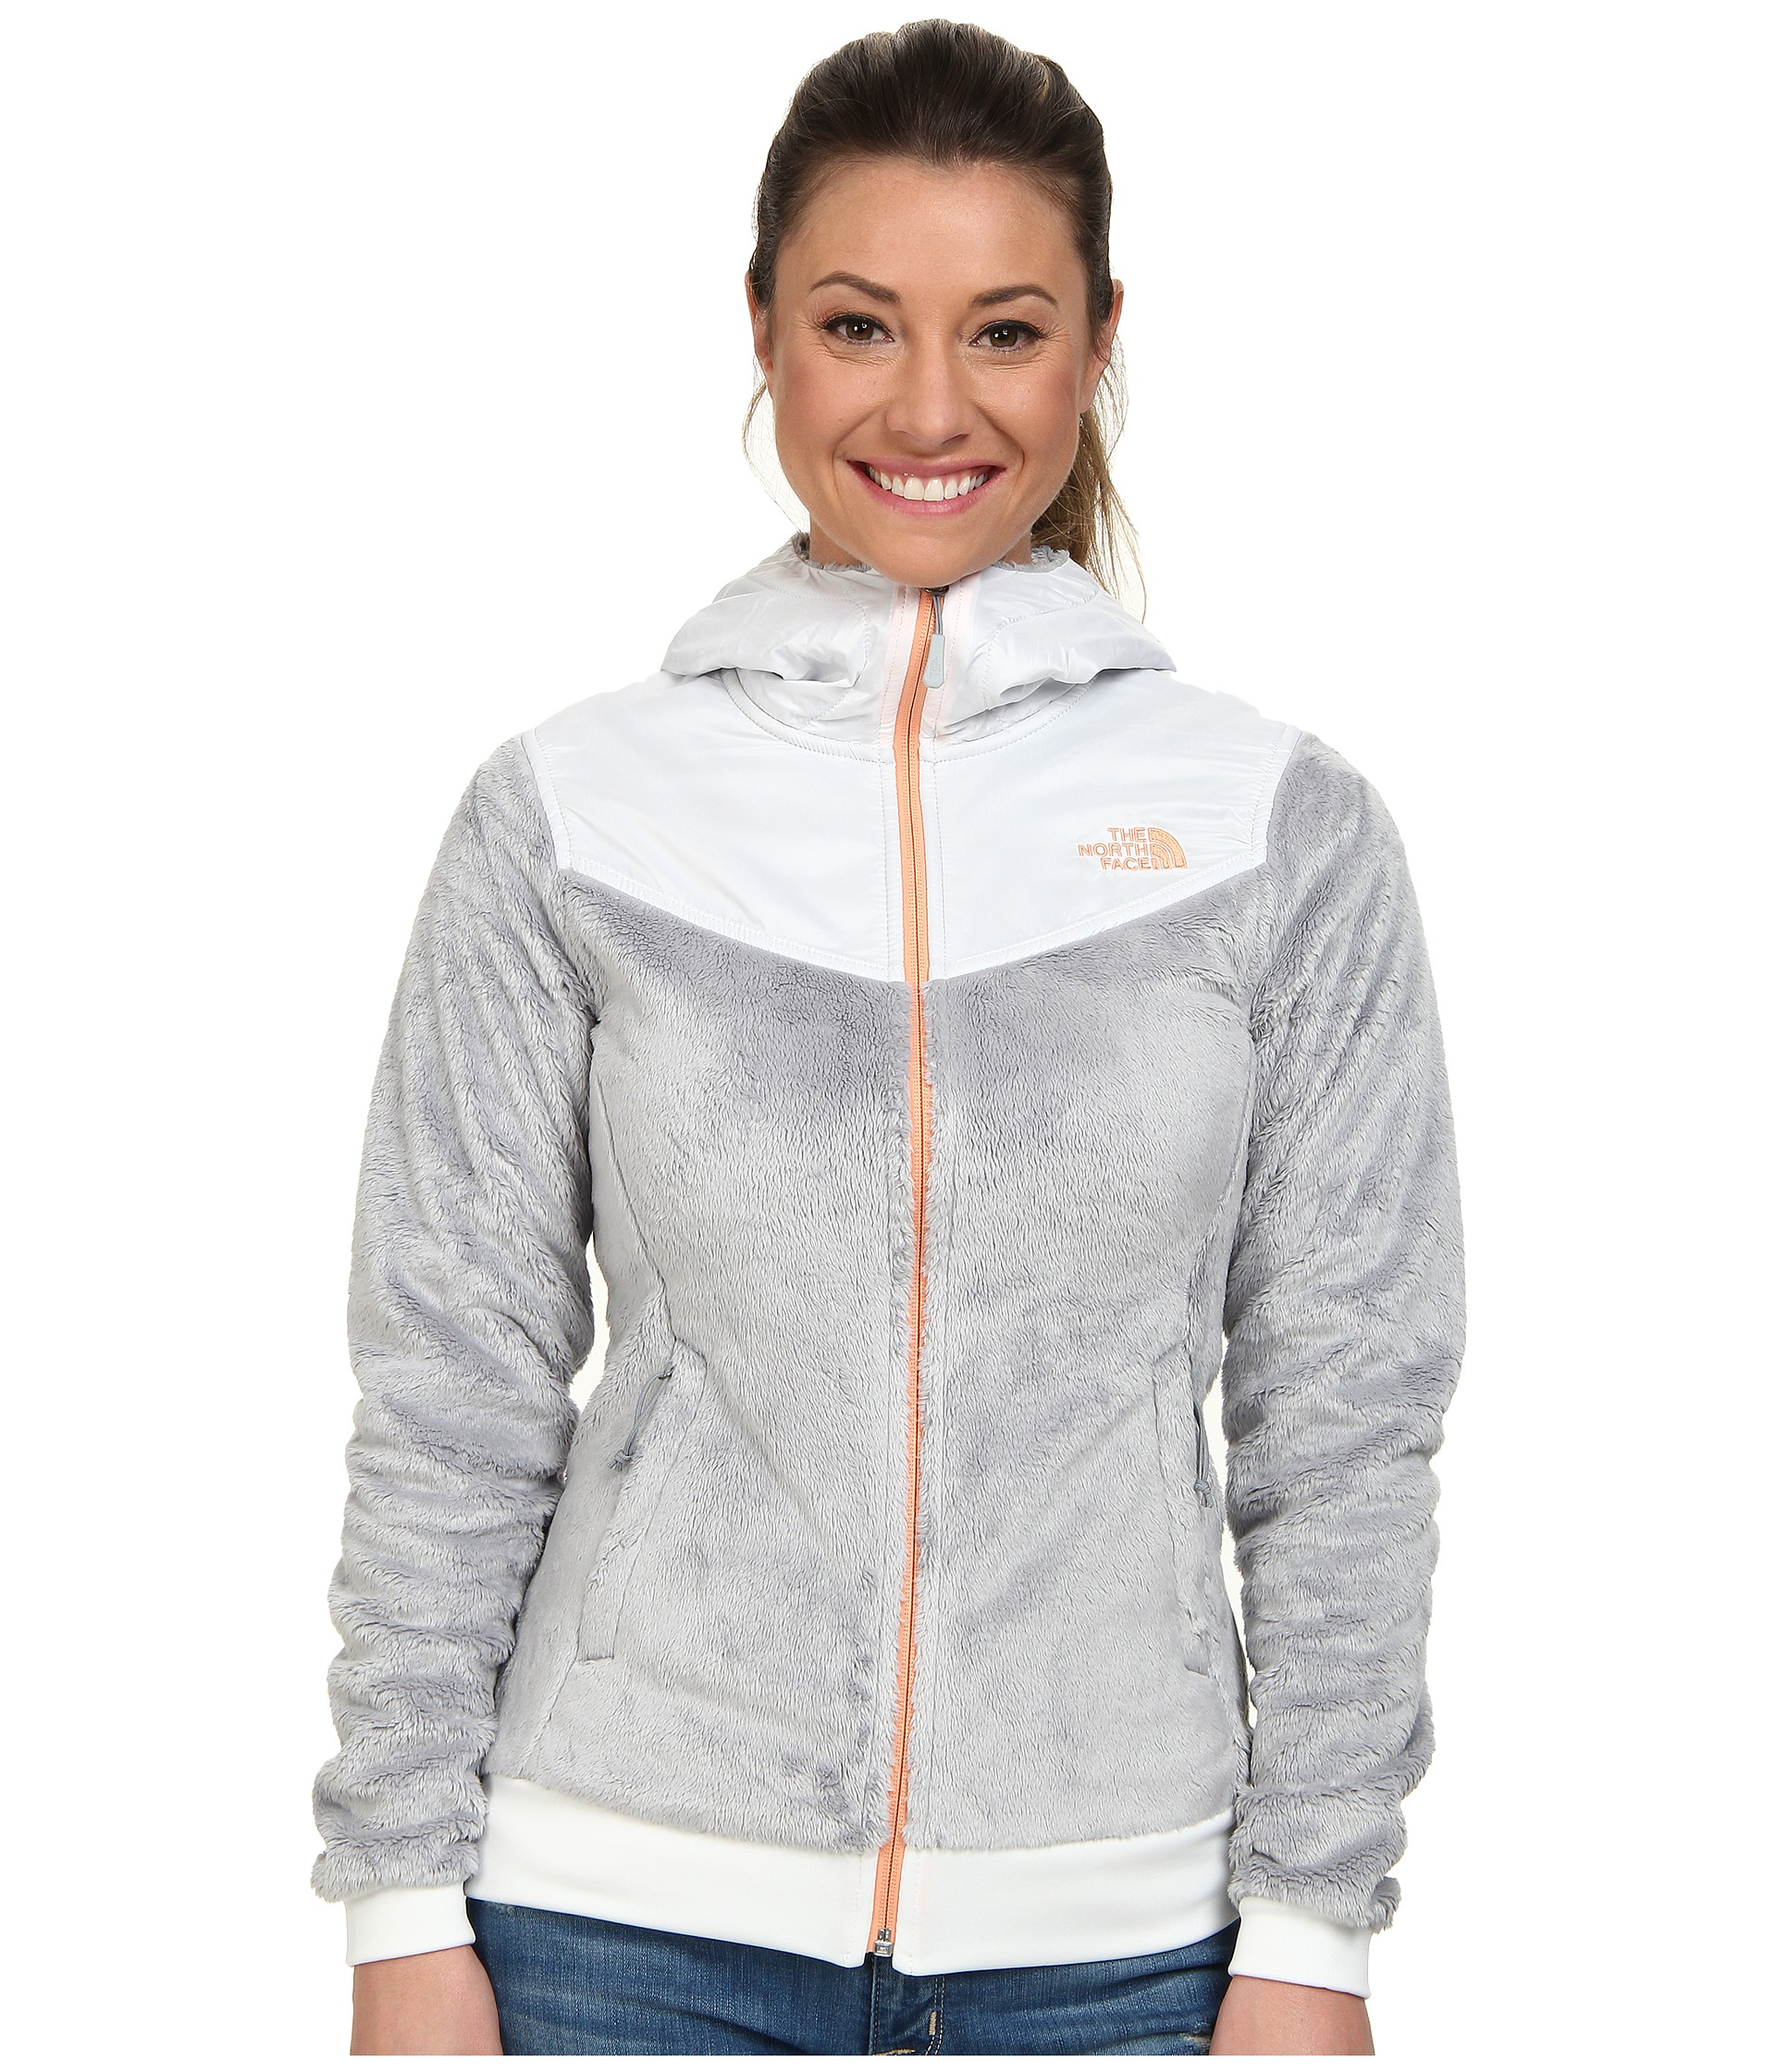 e08bc36f9540 Lyst - The North Face Oso Hoodie in Gray